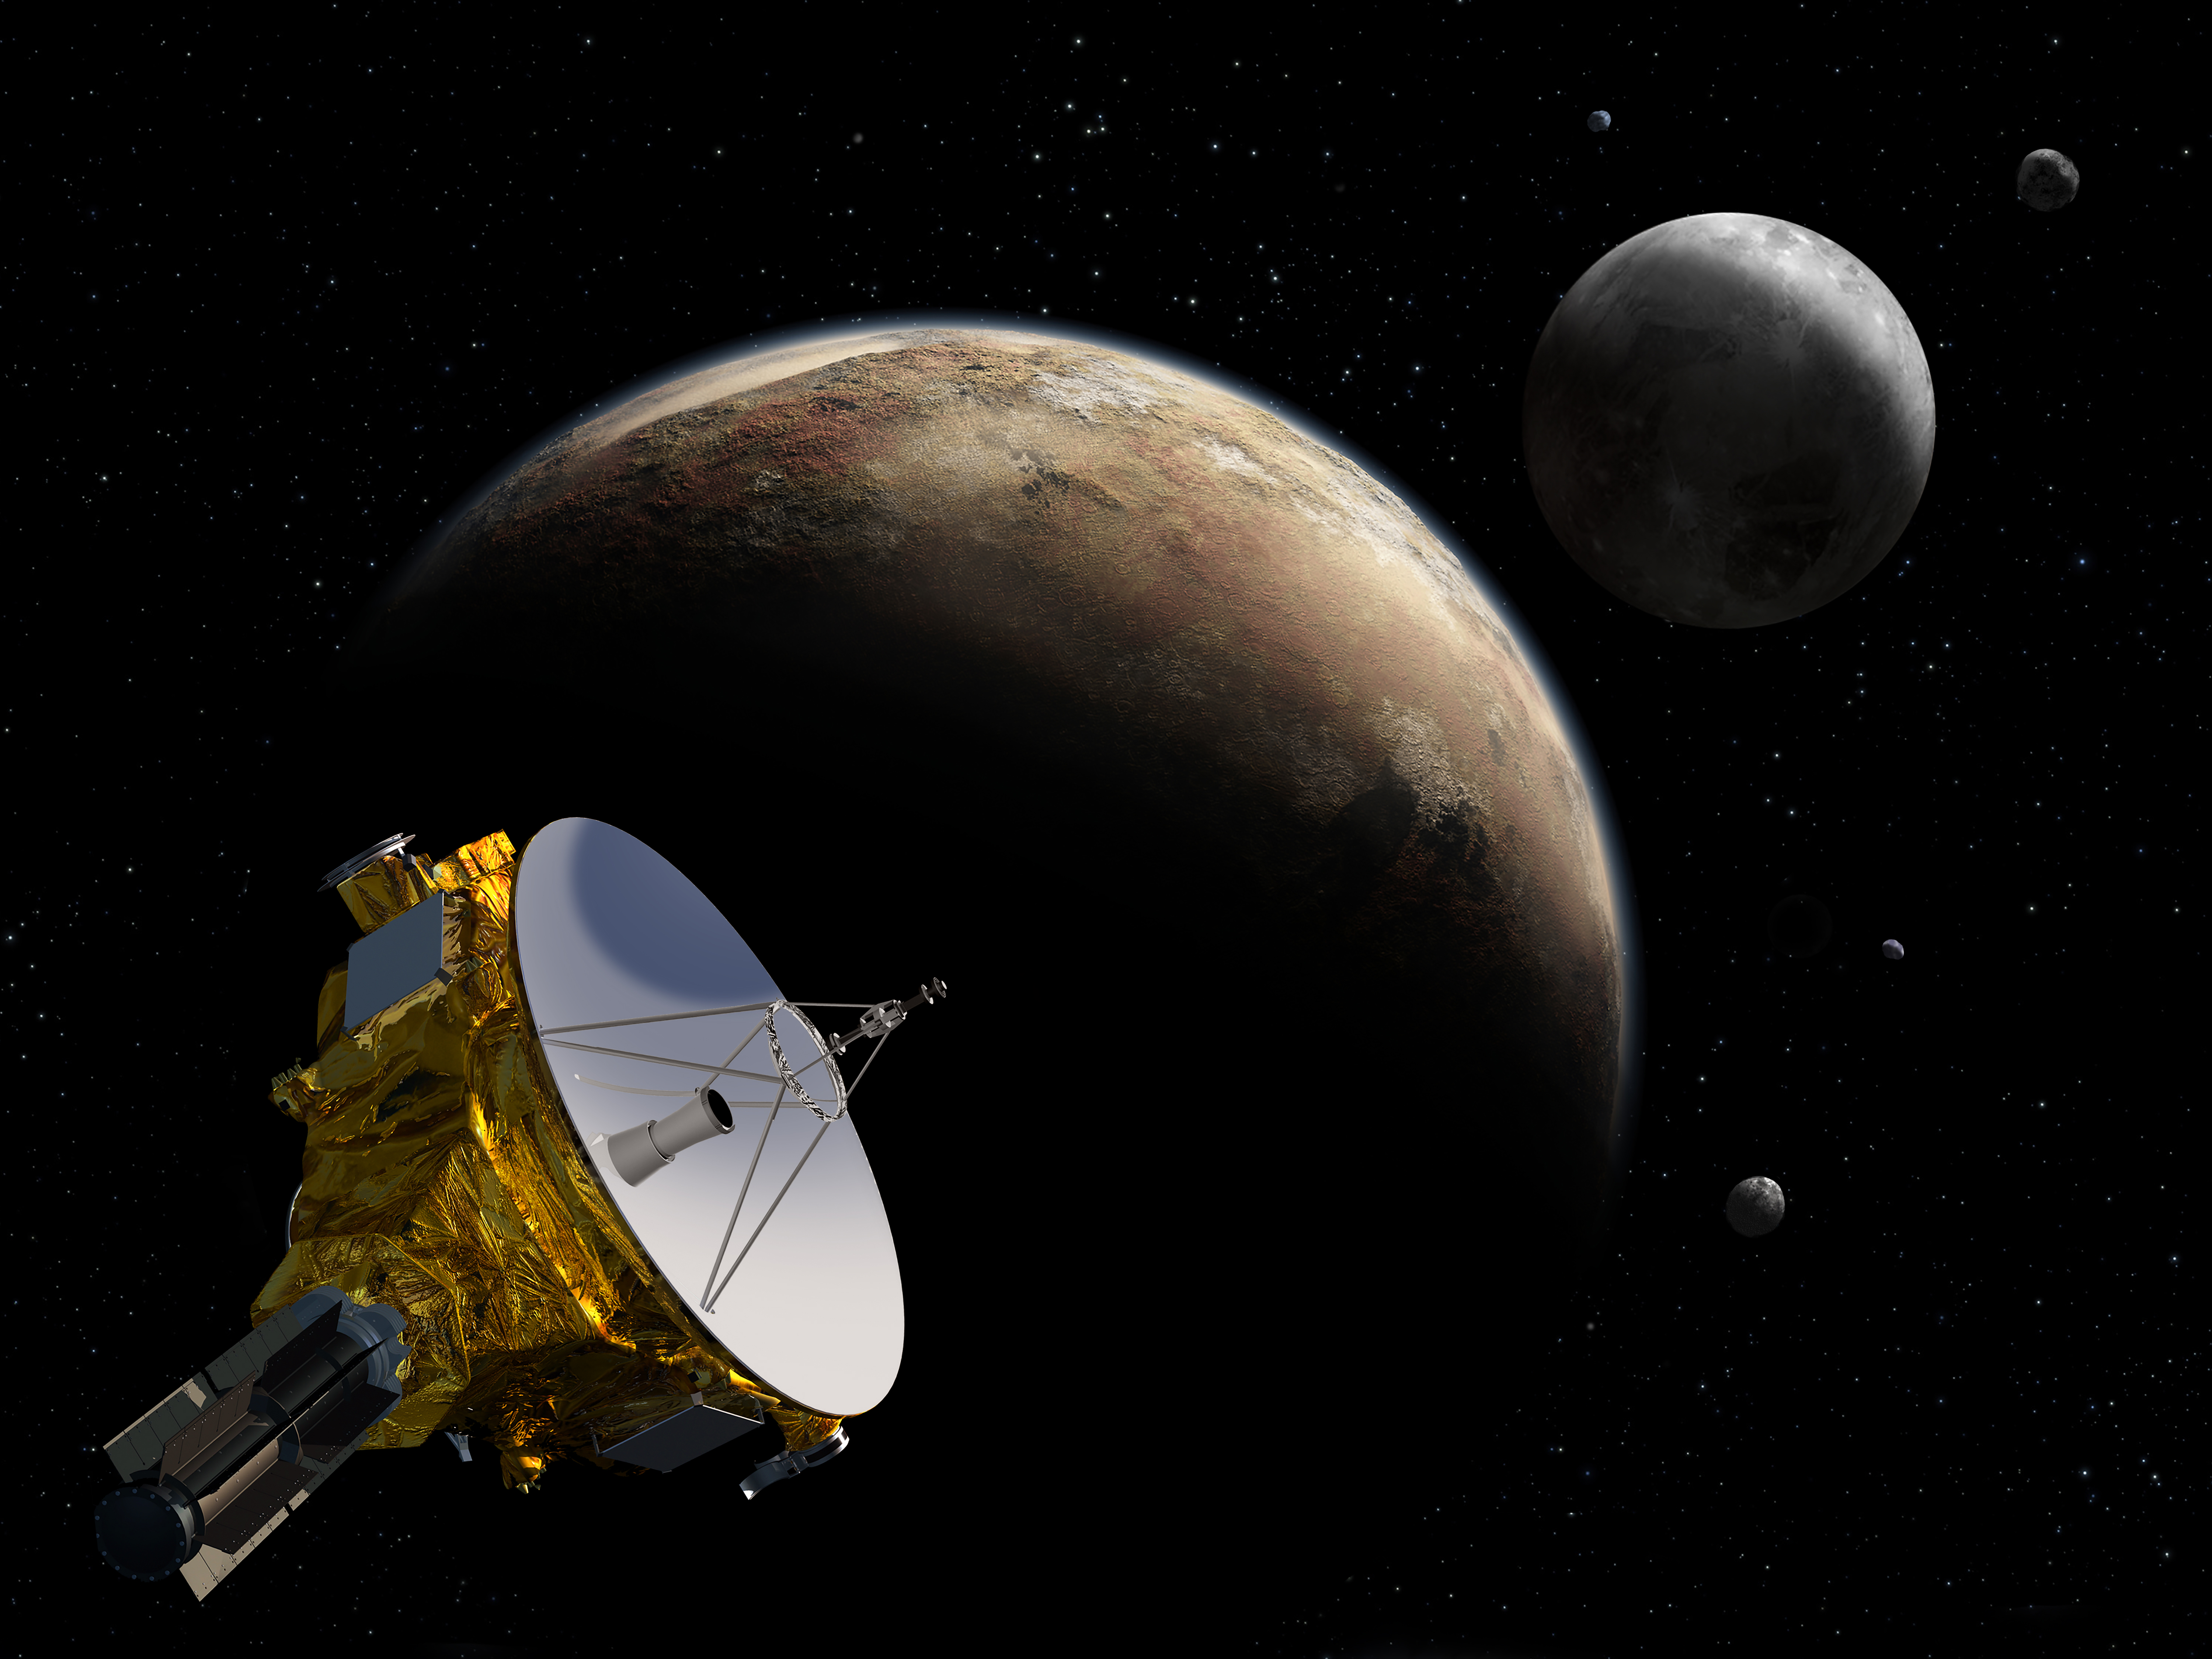 Artist's conception of New Horizons spacecraft flying by Pluto with moon Charon in the distance